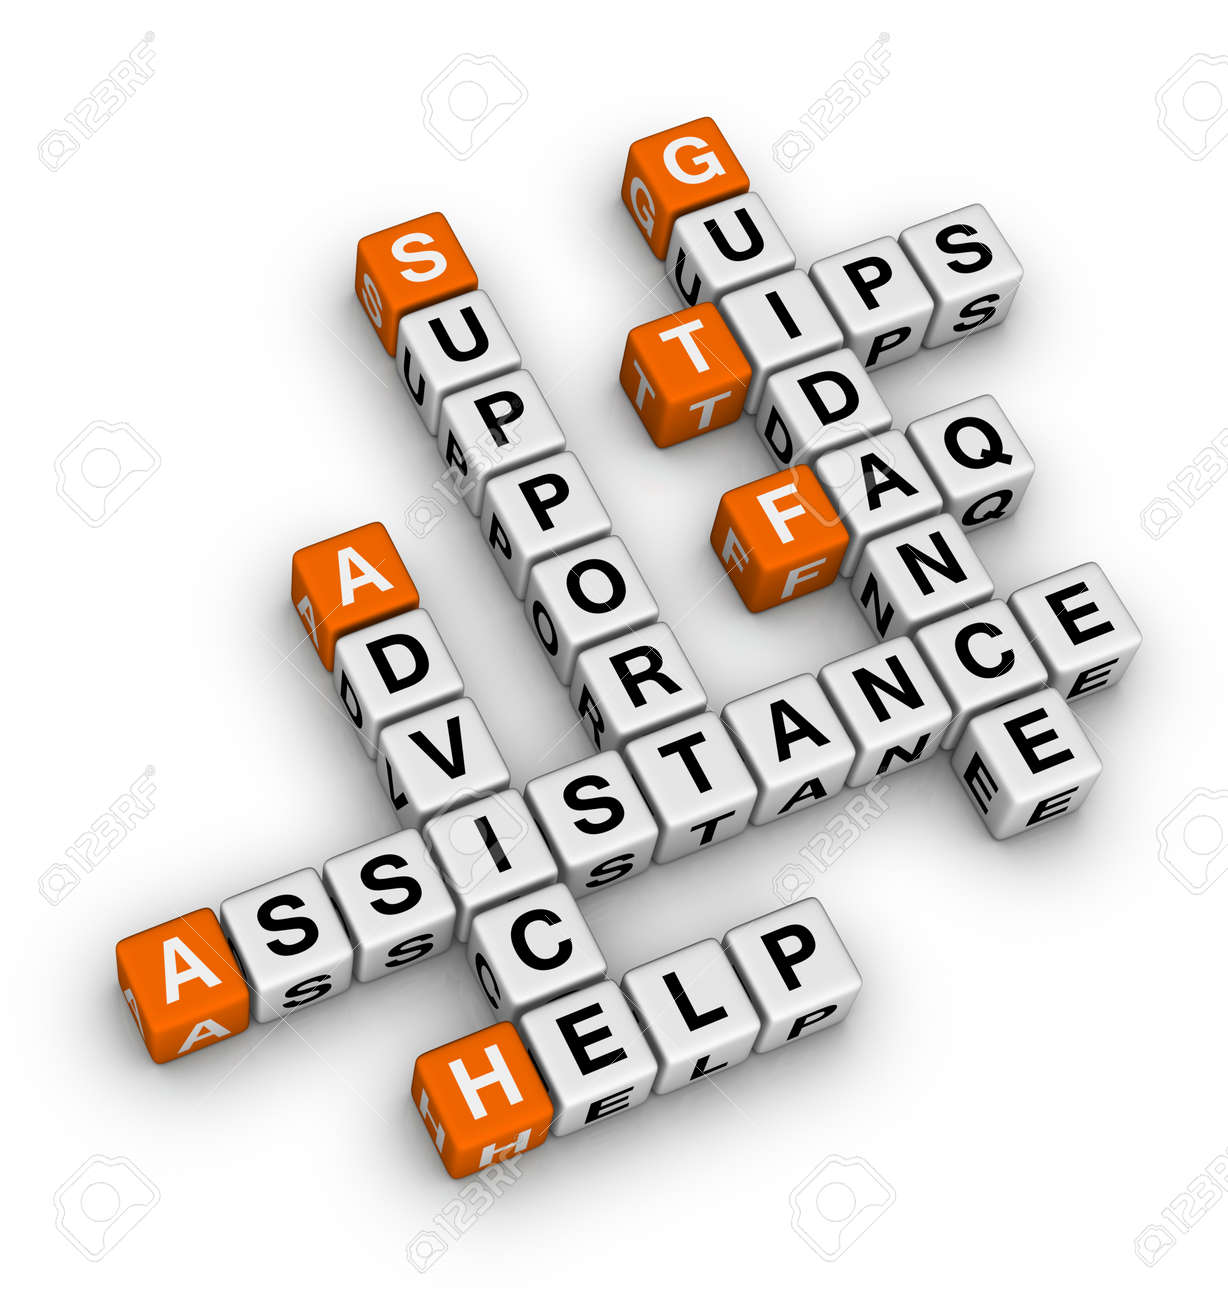 Help and support crossword Stock Photo - 12374313